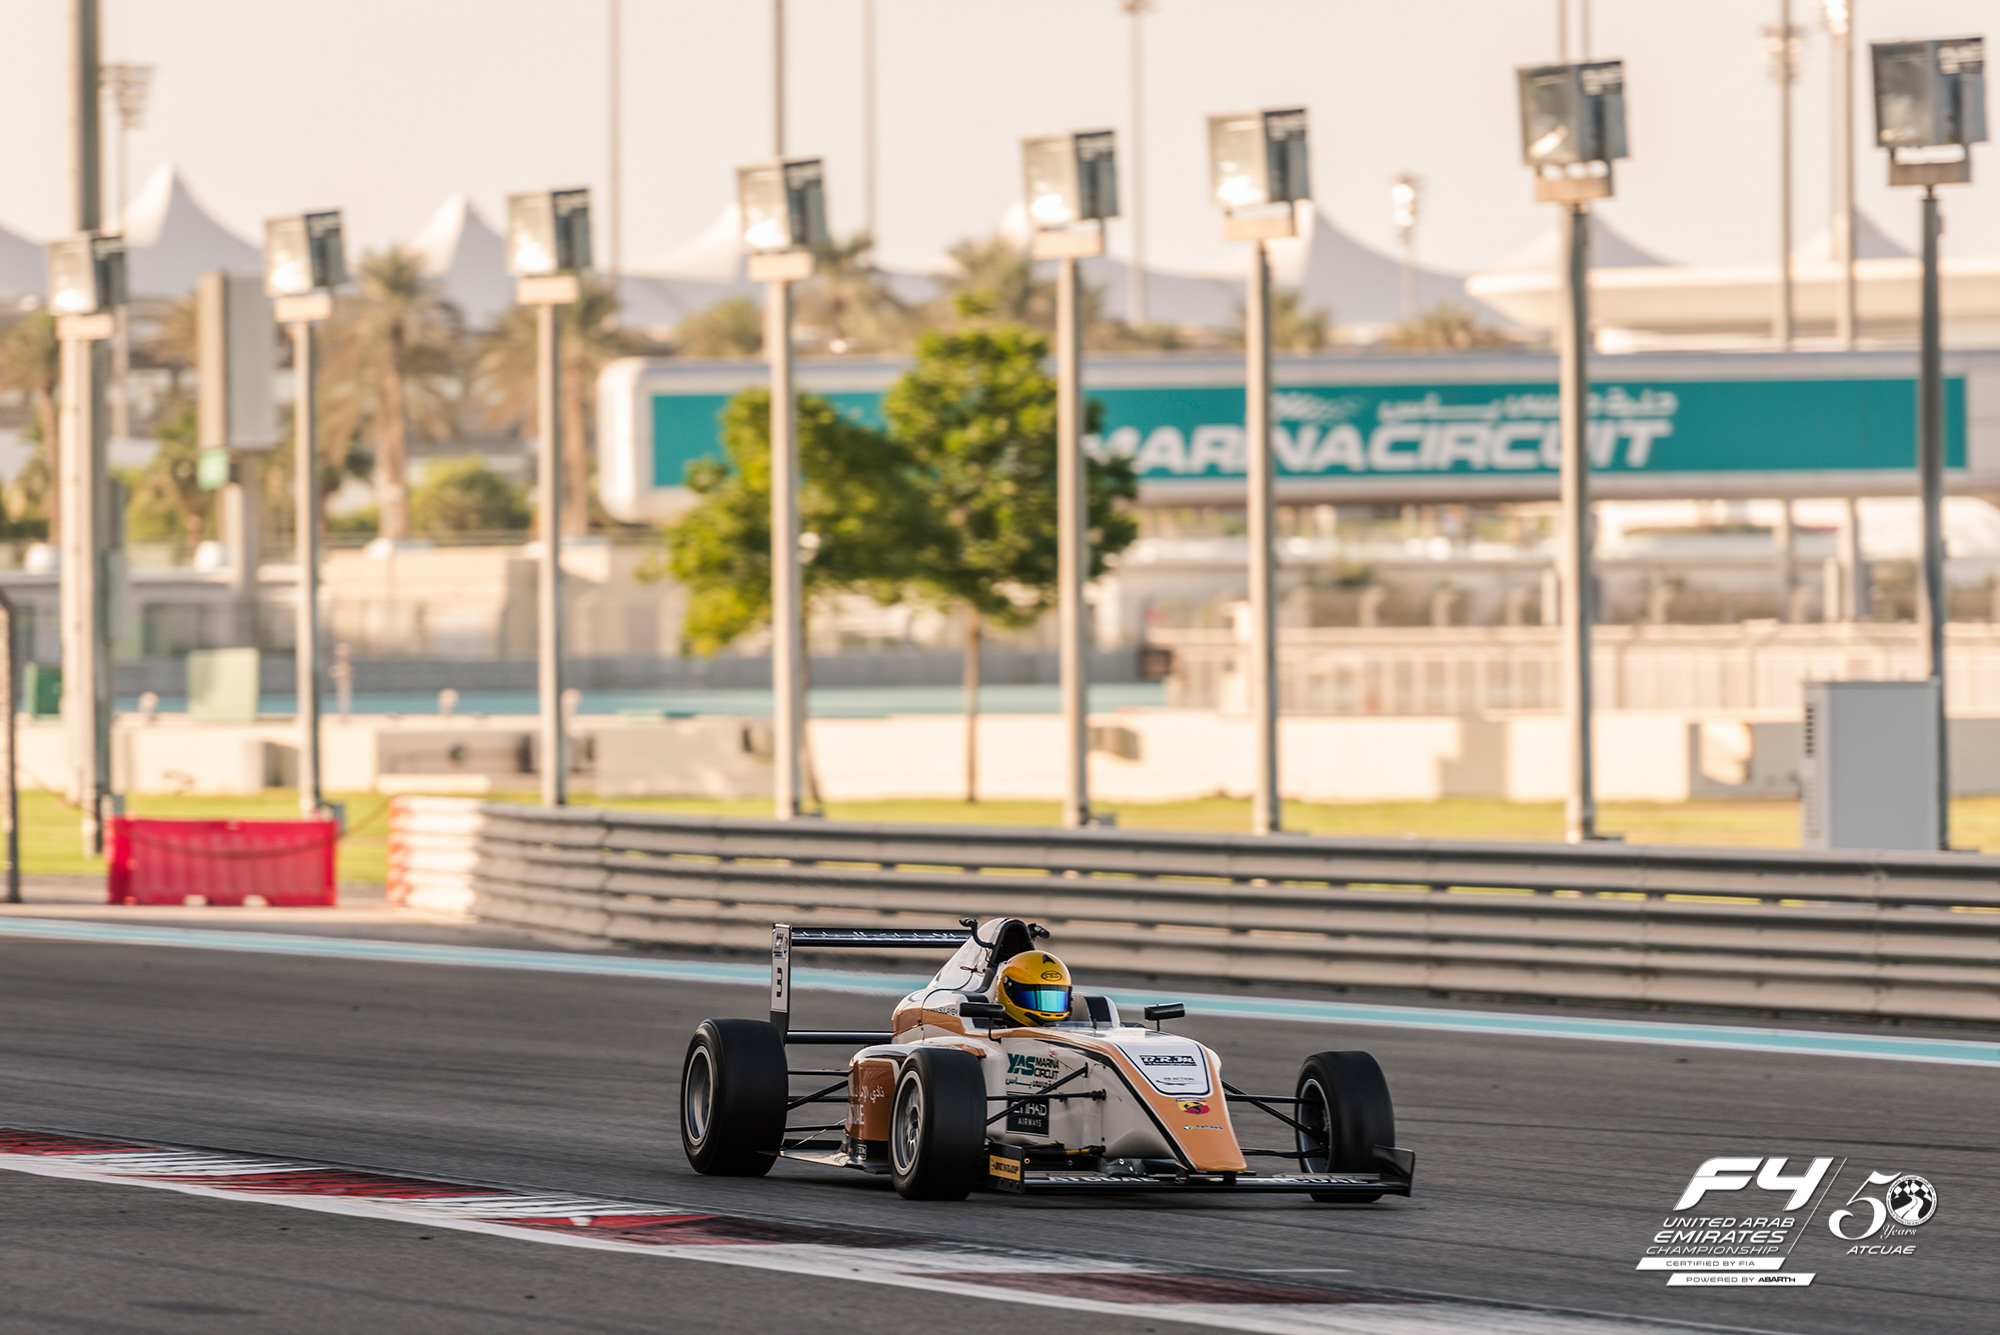 2016 12 18   F4 Second Roud   Abu Dhabi 18 Of 39